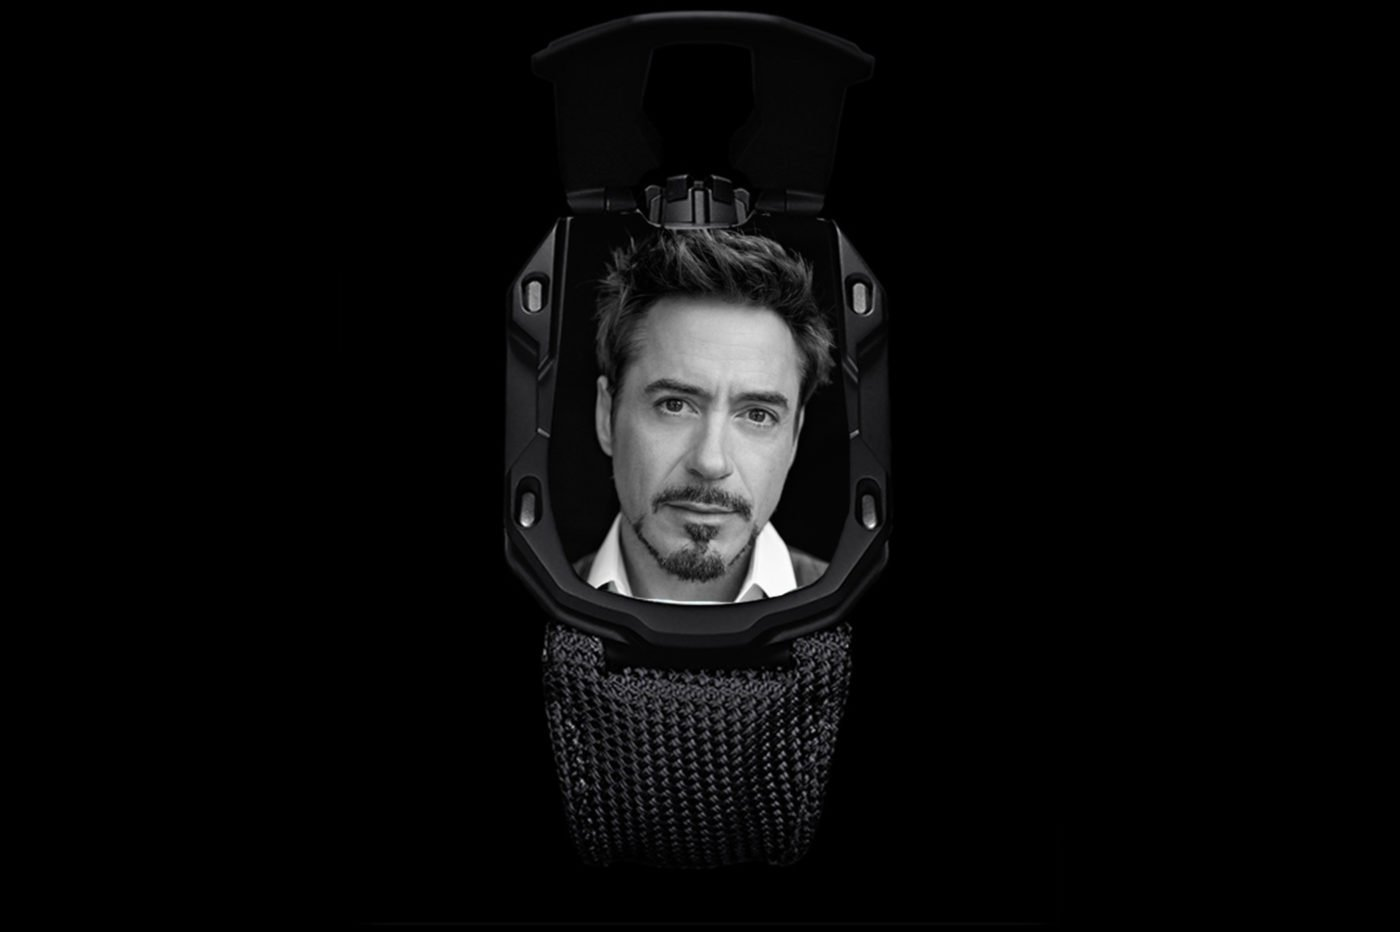 Timebloid: Robert Downey Jr.